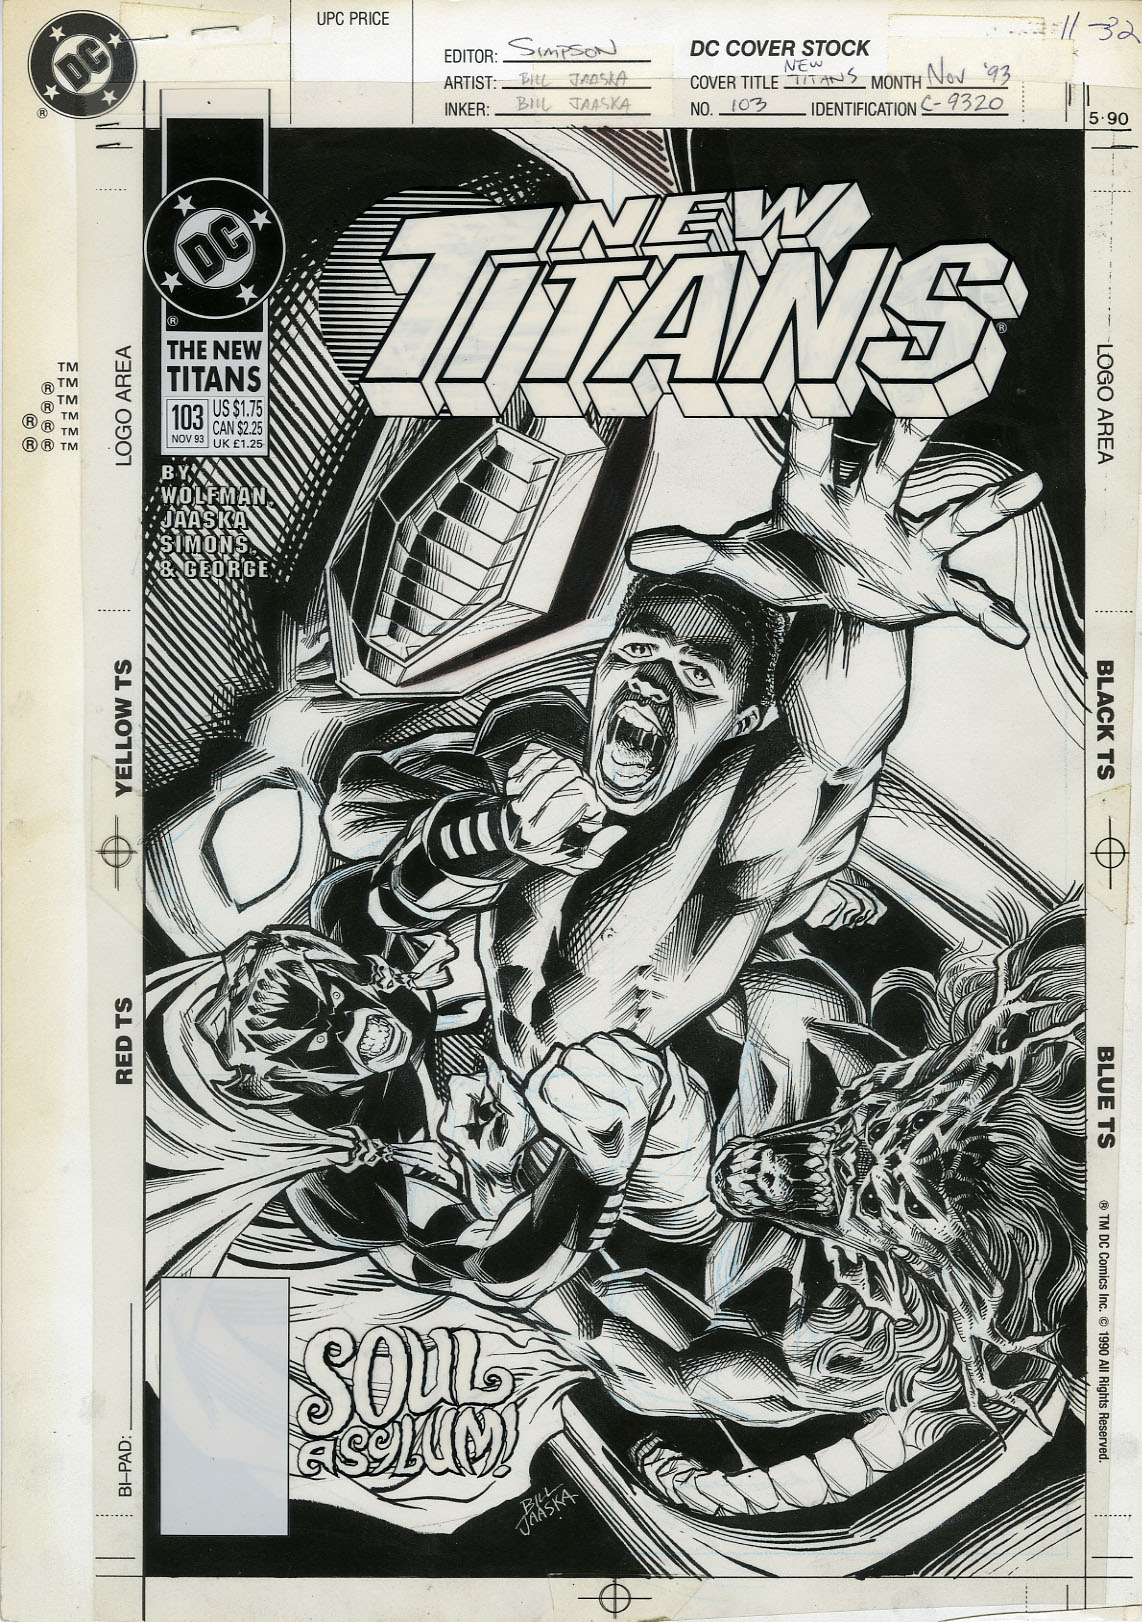 "BILL JAASKA - NEW TITANS #103 ORIGINAL COVER ART ""SOUL ASYLUM!"""